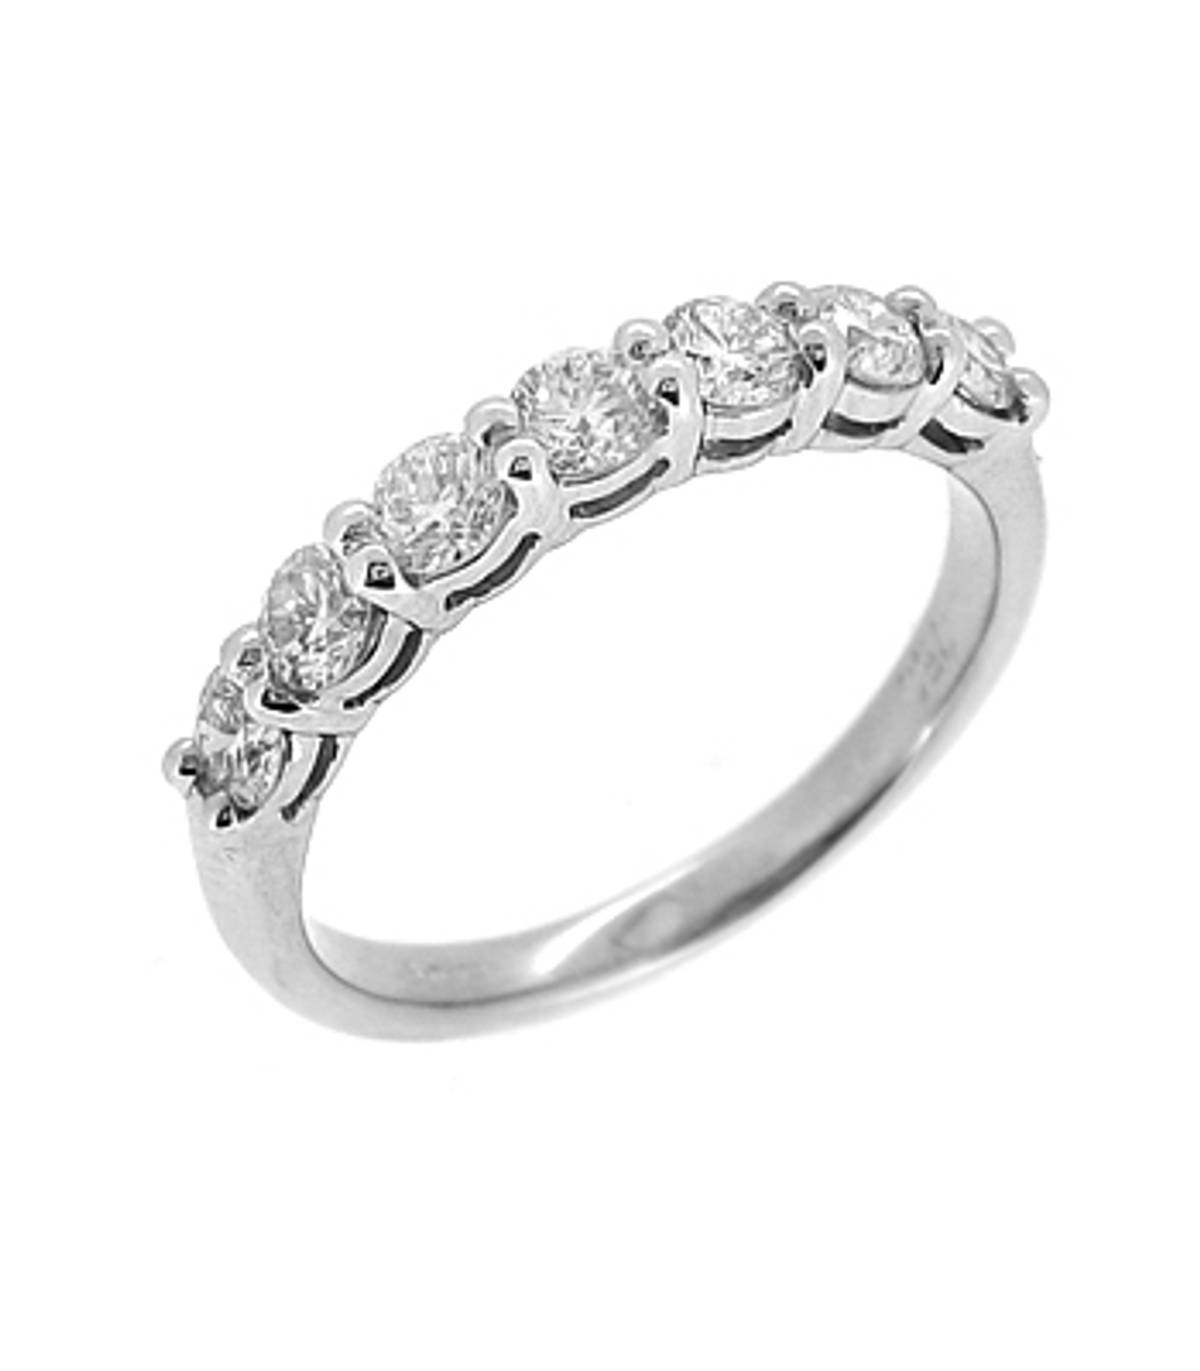 18k white gold brilliant cut 7st diamond claw set eternity ring Carat: total diamond weight 0.85cts Metal: 18k white gold